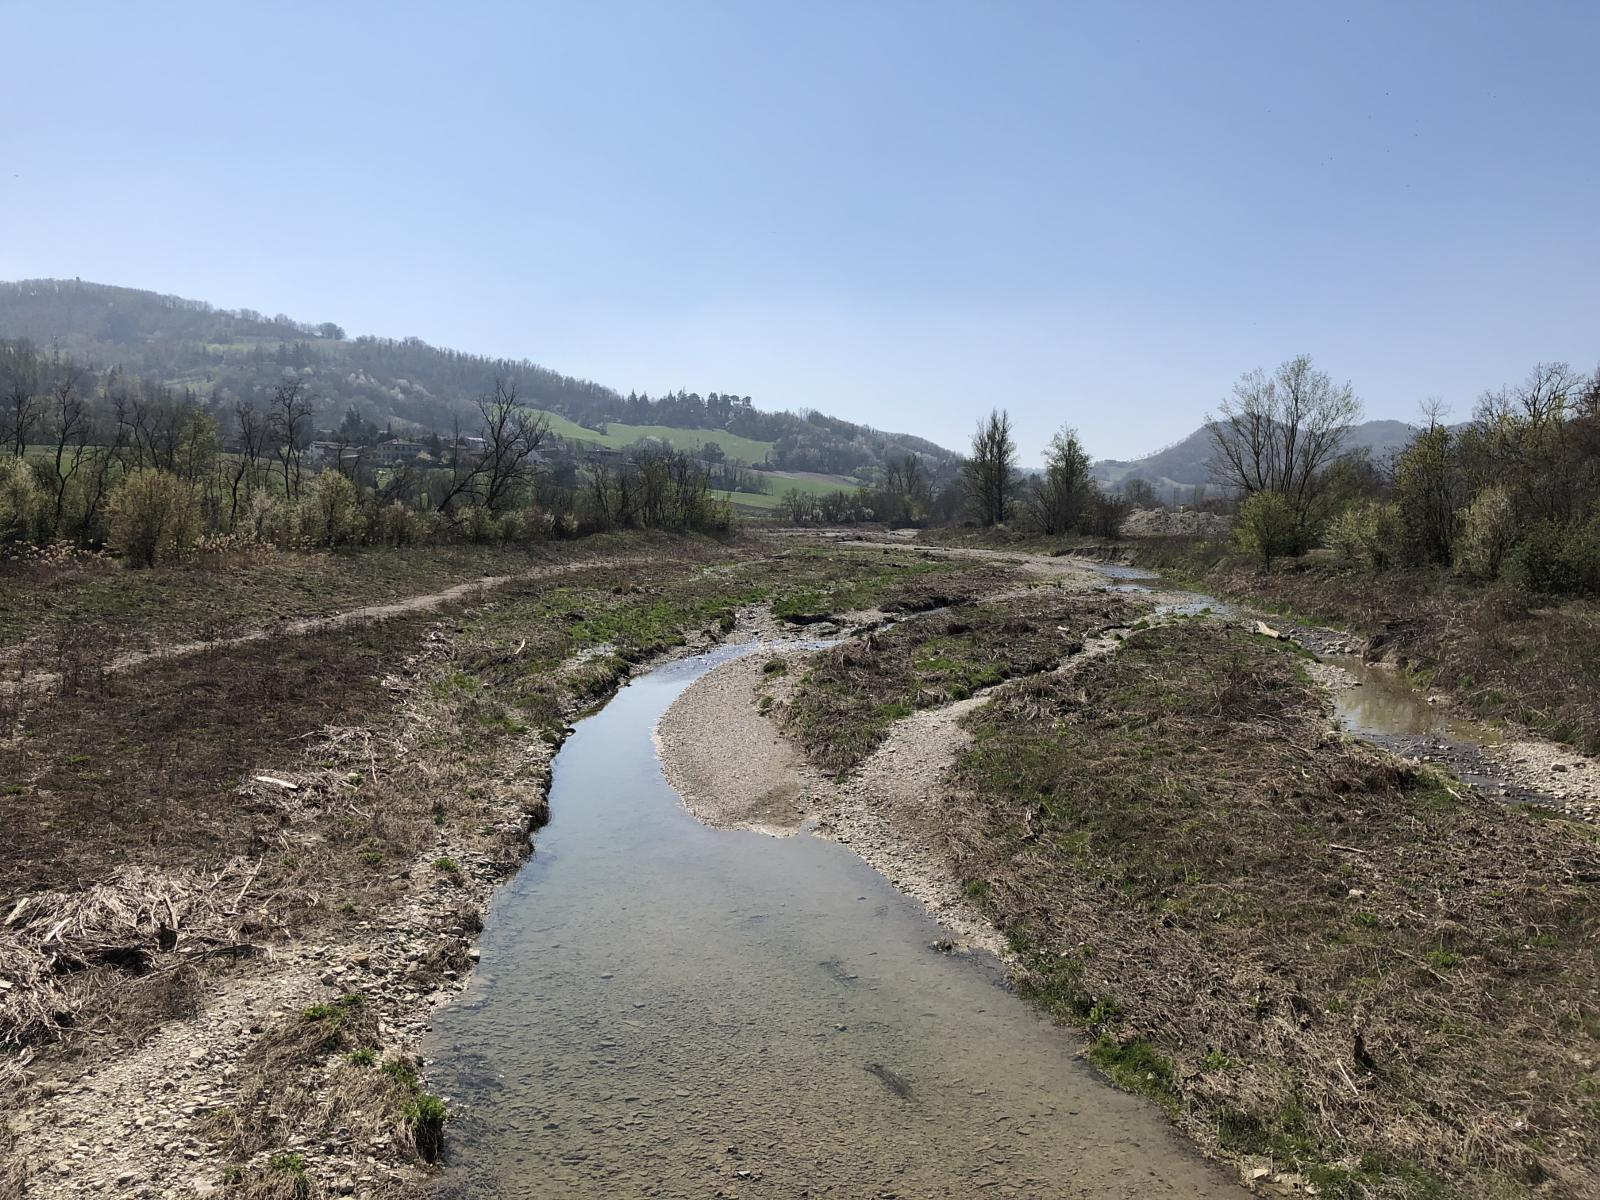 Photo of Valle dell'Enza - 24-03-2019